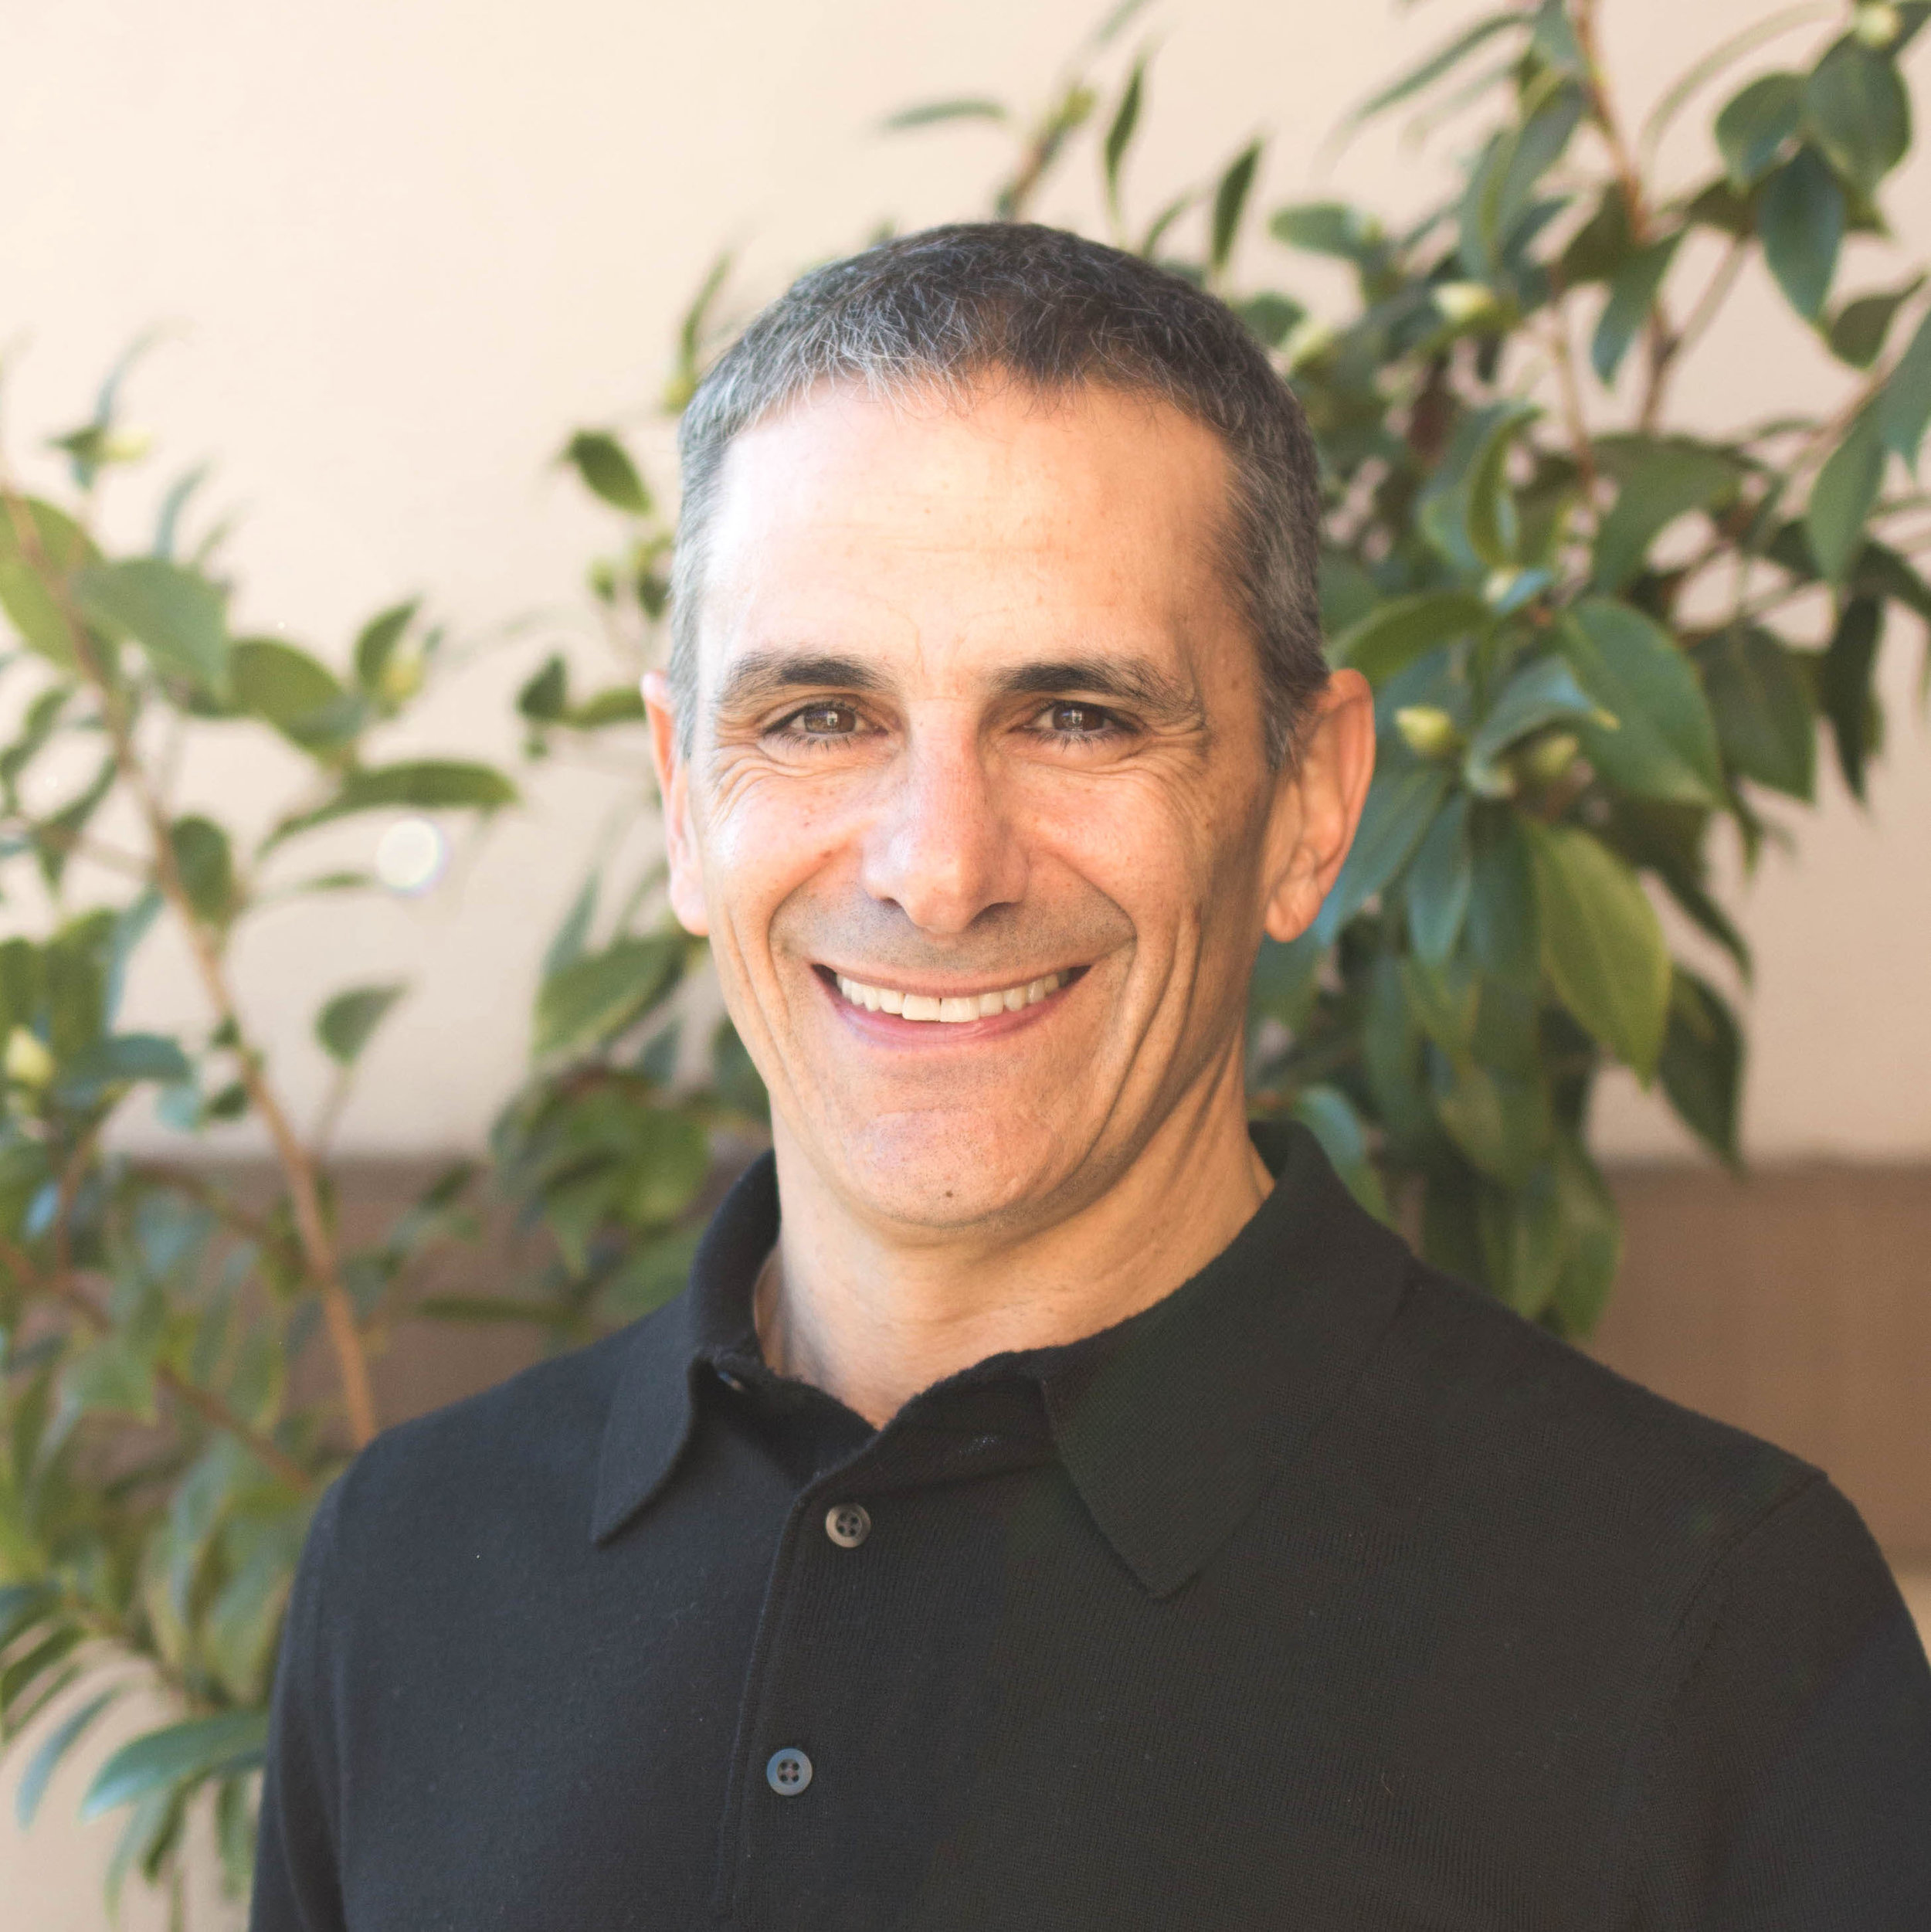 Peter C. Contini, M.D.  Dr. Pete grew up in Saratoga, CA the youngest of seven children, and spent his youth playing competitive sports. When not at work he is busy raising his four boys with Dr. Michelle.   Dr. Pete enjoys coaching his sons' sports teams, running, Crossfit, and watching ESPN. His favorite show is  Pardon the Interruption .   Dr. Pete is a popular guest on the  The Ronn Owens Show  on KGO radio and has appeared on many other Bay Area TV and radio programs. An accomplished keynote speaker, Dr. Pete has spoken to many groups in the Bay Area. He is available to speak on a variety of topics at your pre-school, mother's group, etc. Please call our office at  408-268-1122  for more information.   College  St. Mary's College of California, B.S. in Health Science   Medical School  Georgetown University   Internship/Residency  Children's Memorial Hospital, Chicago, IL   Certification  American Board of Pediatrics, 1998, 2006, 2017 Fellow, American Academy of Pediatrics   Clinical Interests  Sports Medicine   Awards  Voted one of Silicon Valley's Favorite Pediatricians for several years by the readers of Bay Area Parent Magazine